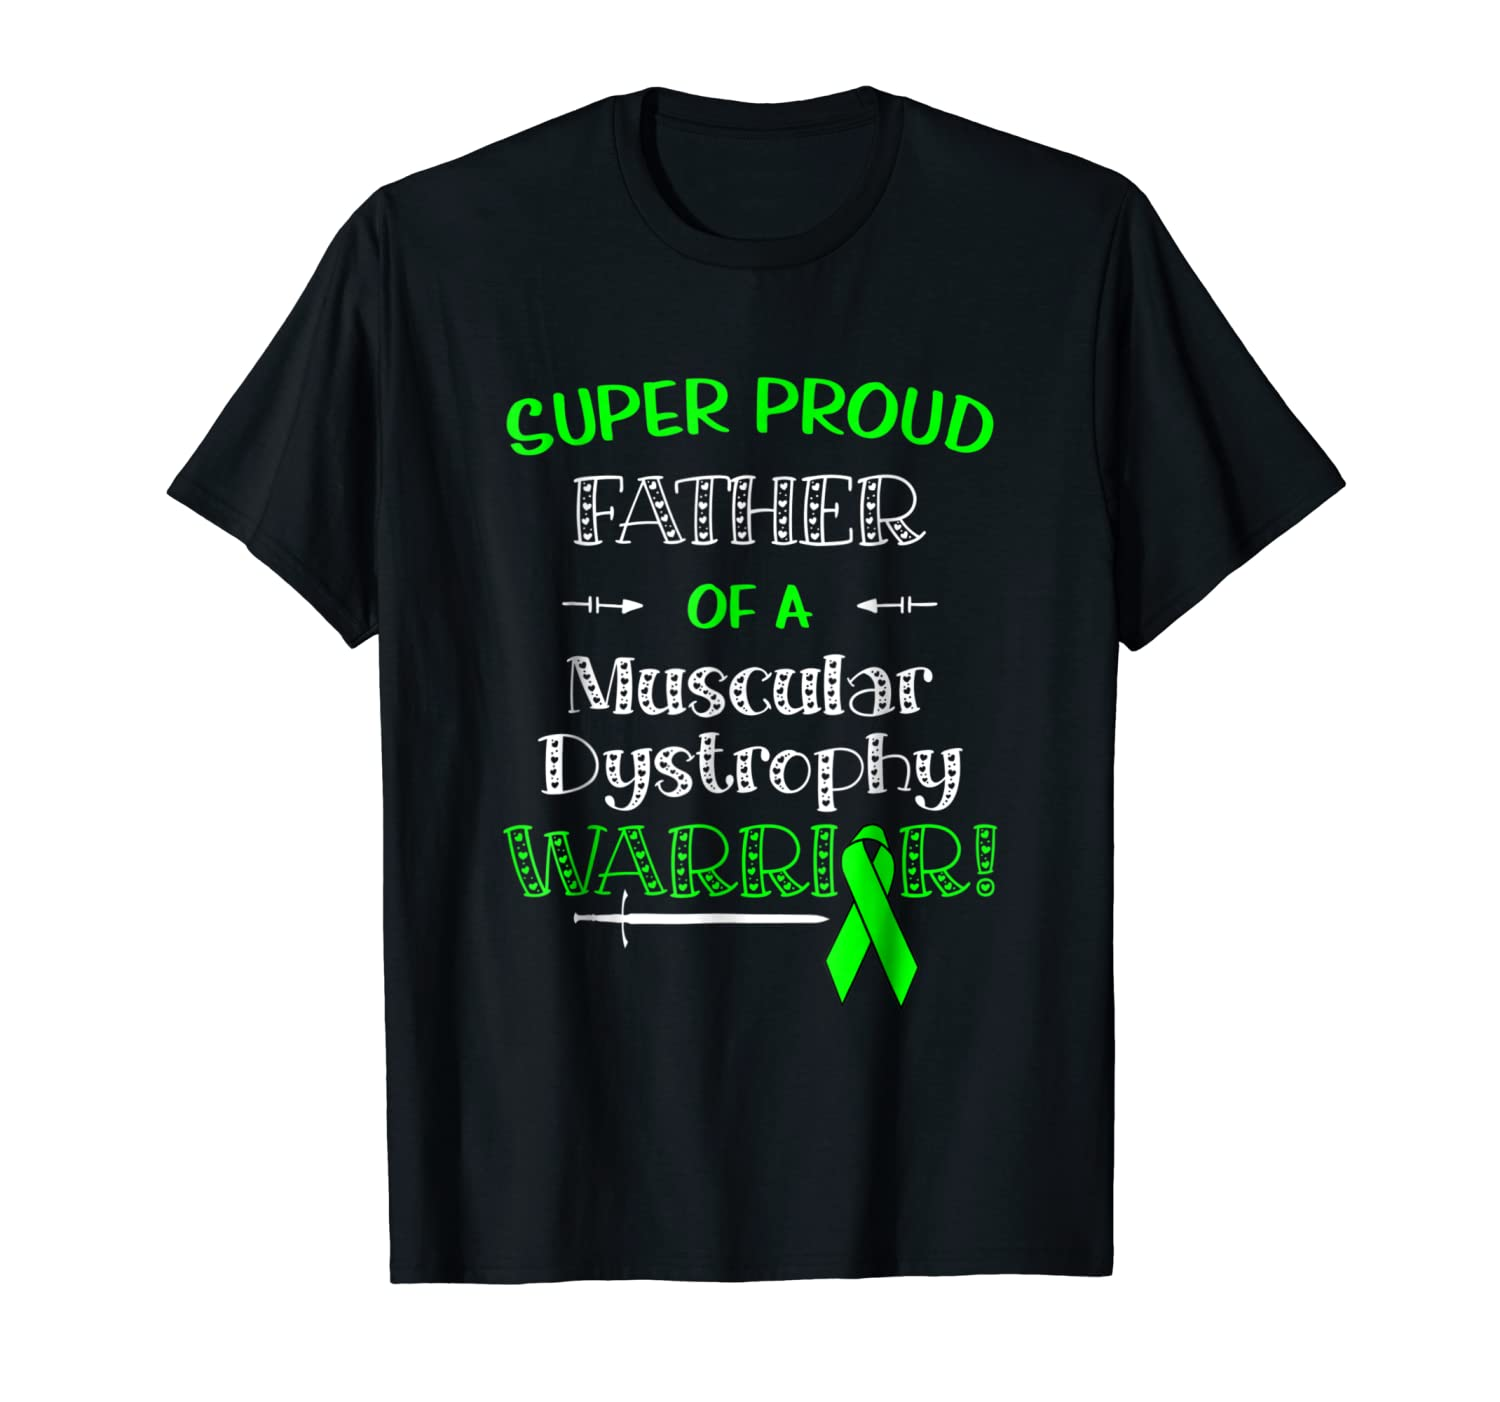 e87b4eb1 Amazon.com: Super Proud Father Of A Muscular Dystrophy Warrior Shirt:  Clothing